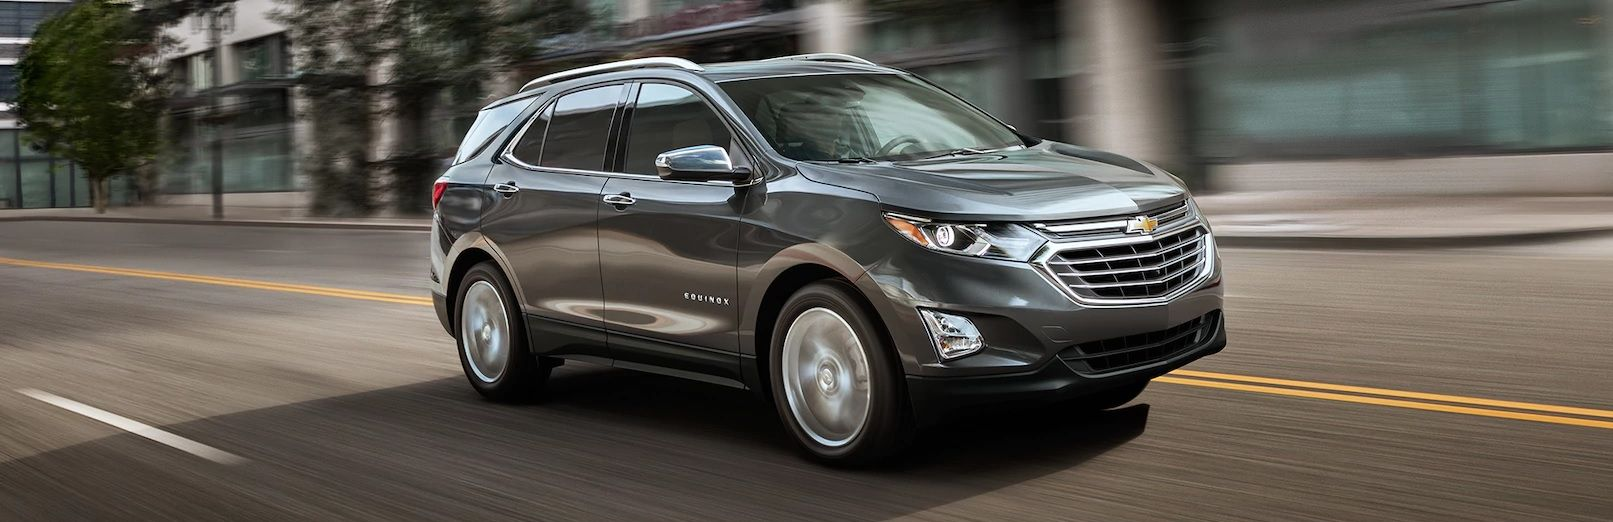 Chevrolet Equinox 2018 a la venta cerca de Washington, DC